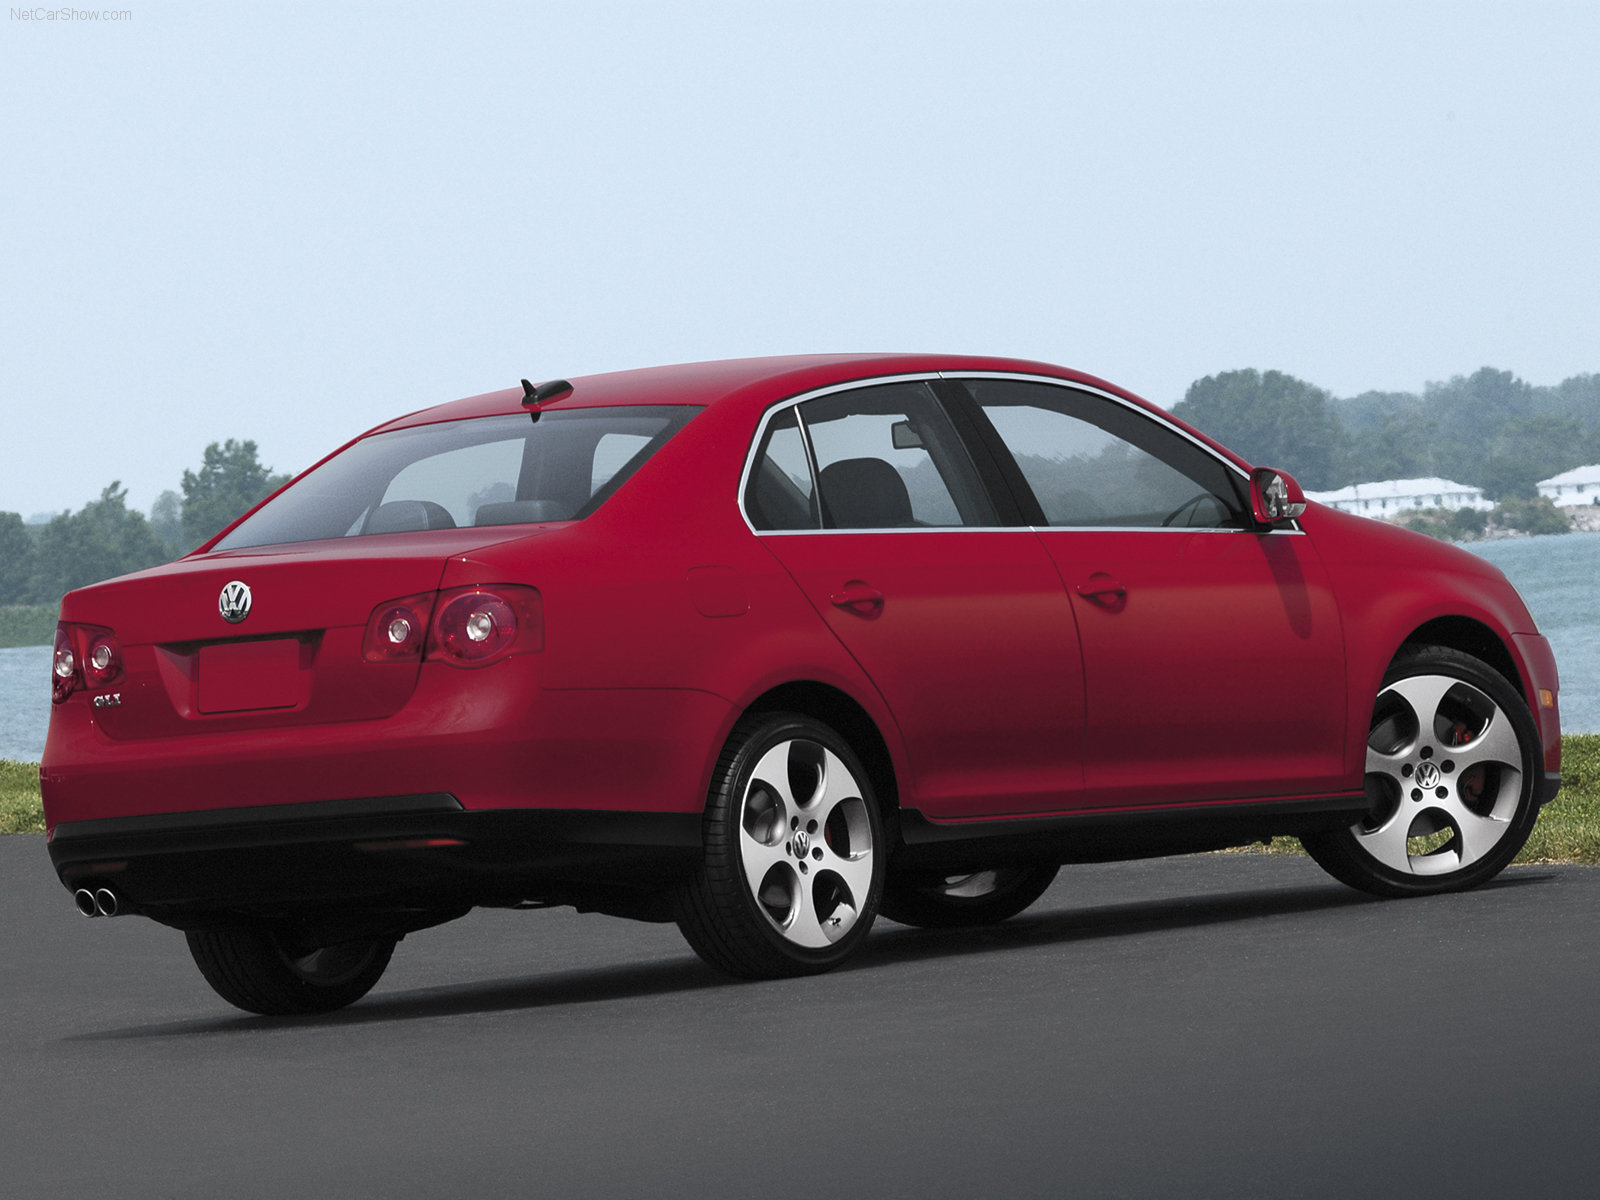 Volkswagen Jetta photo 34377